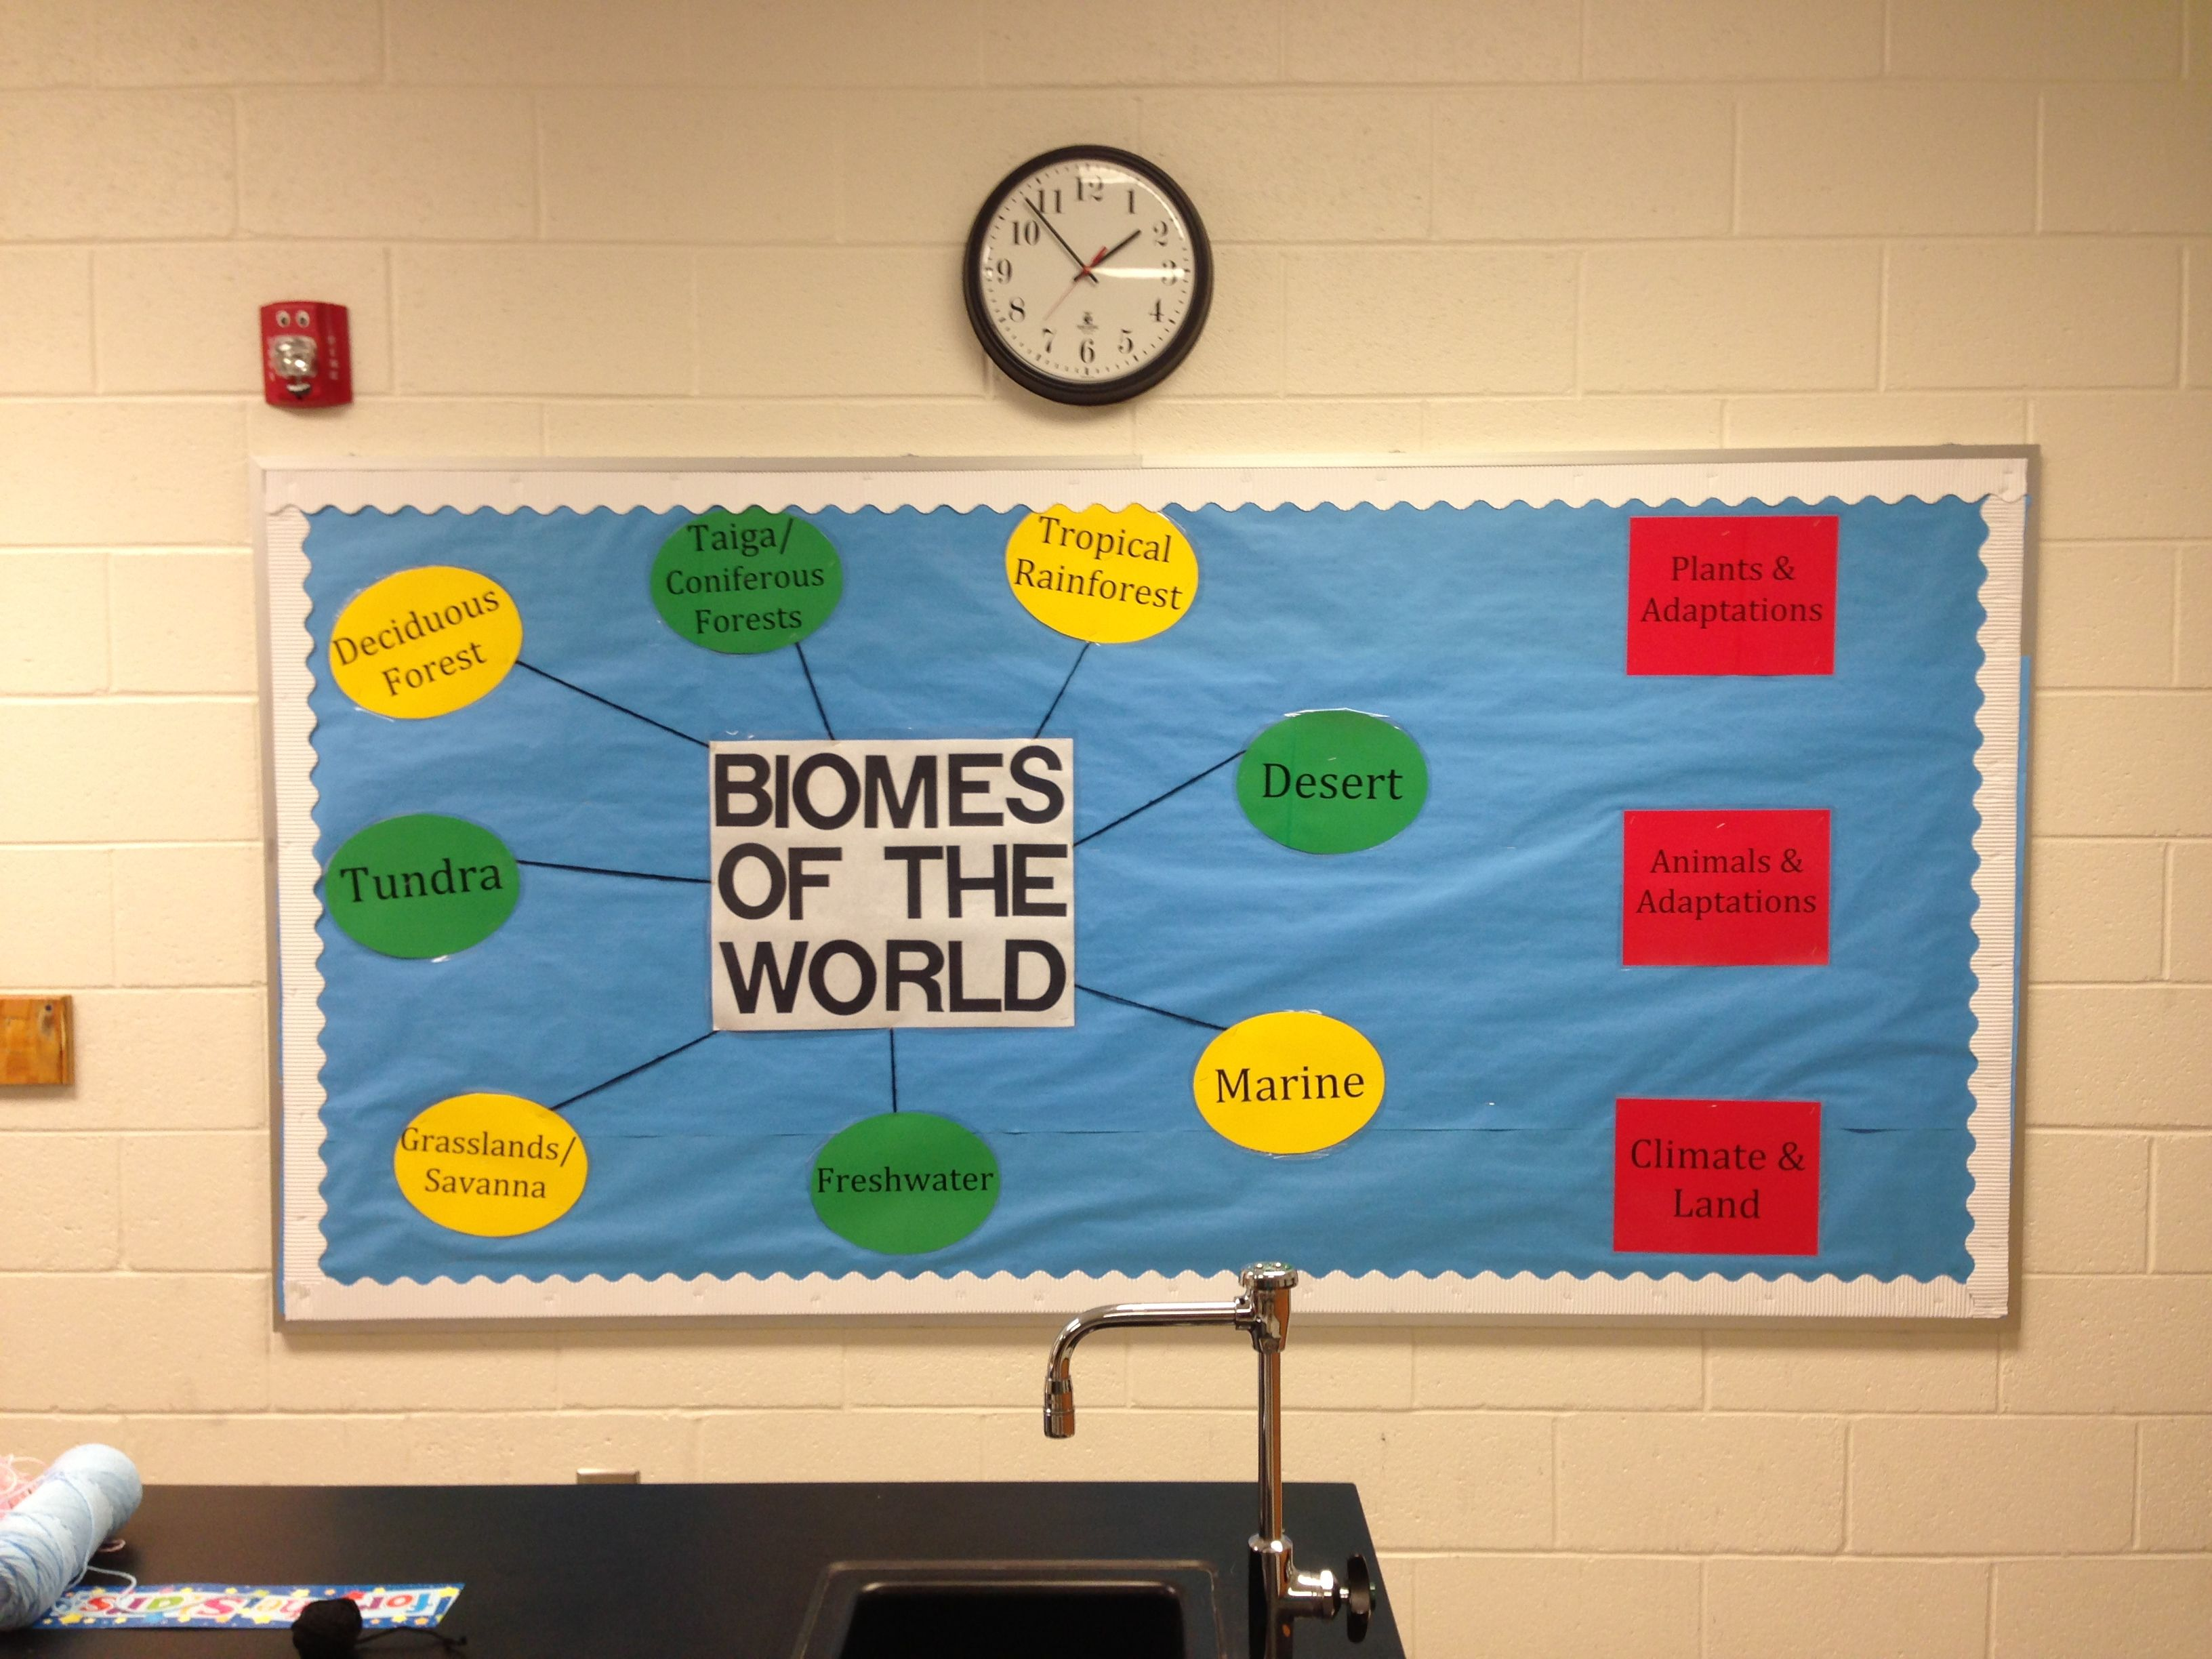 Biomes Of The World Science Interactive Bulletin Board Habitats Vocabulary Preview M Pruitt